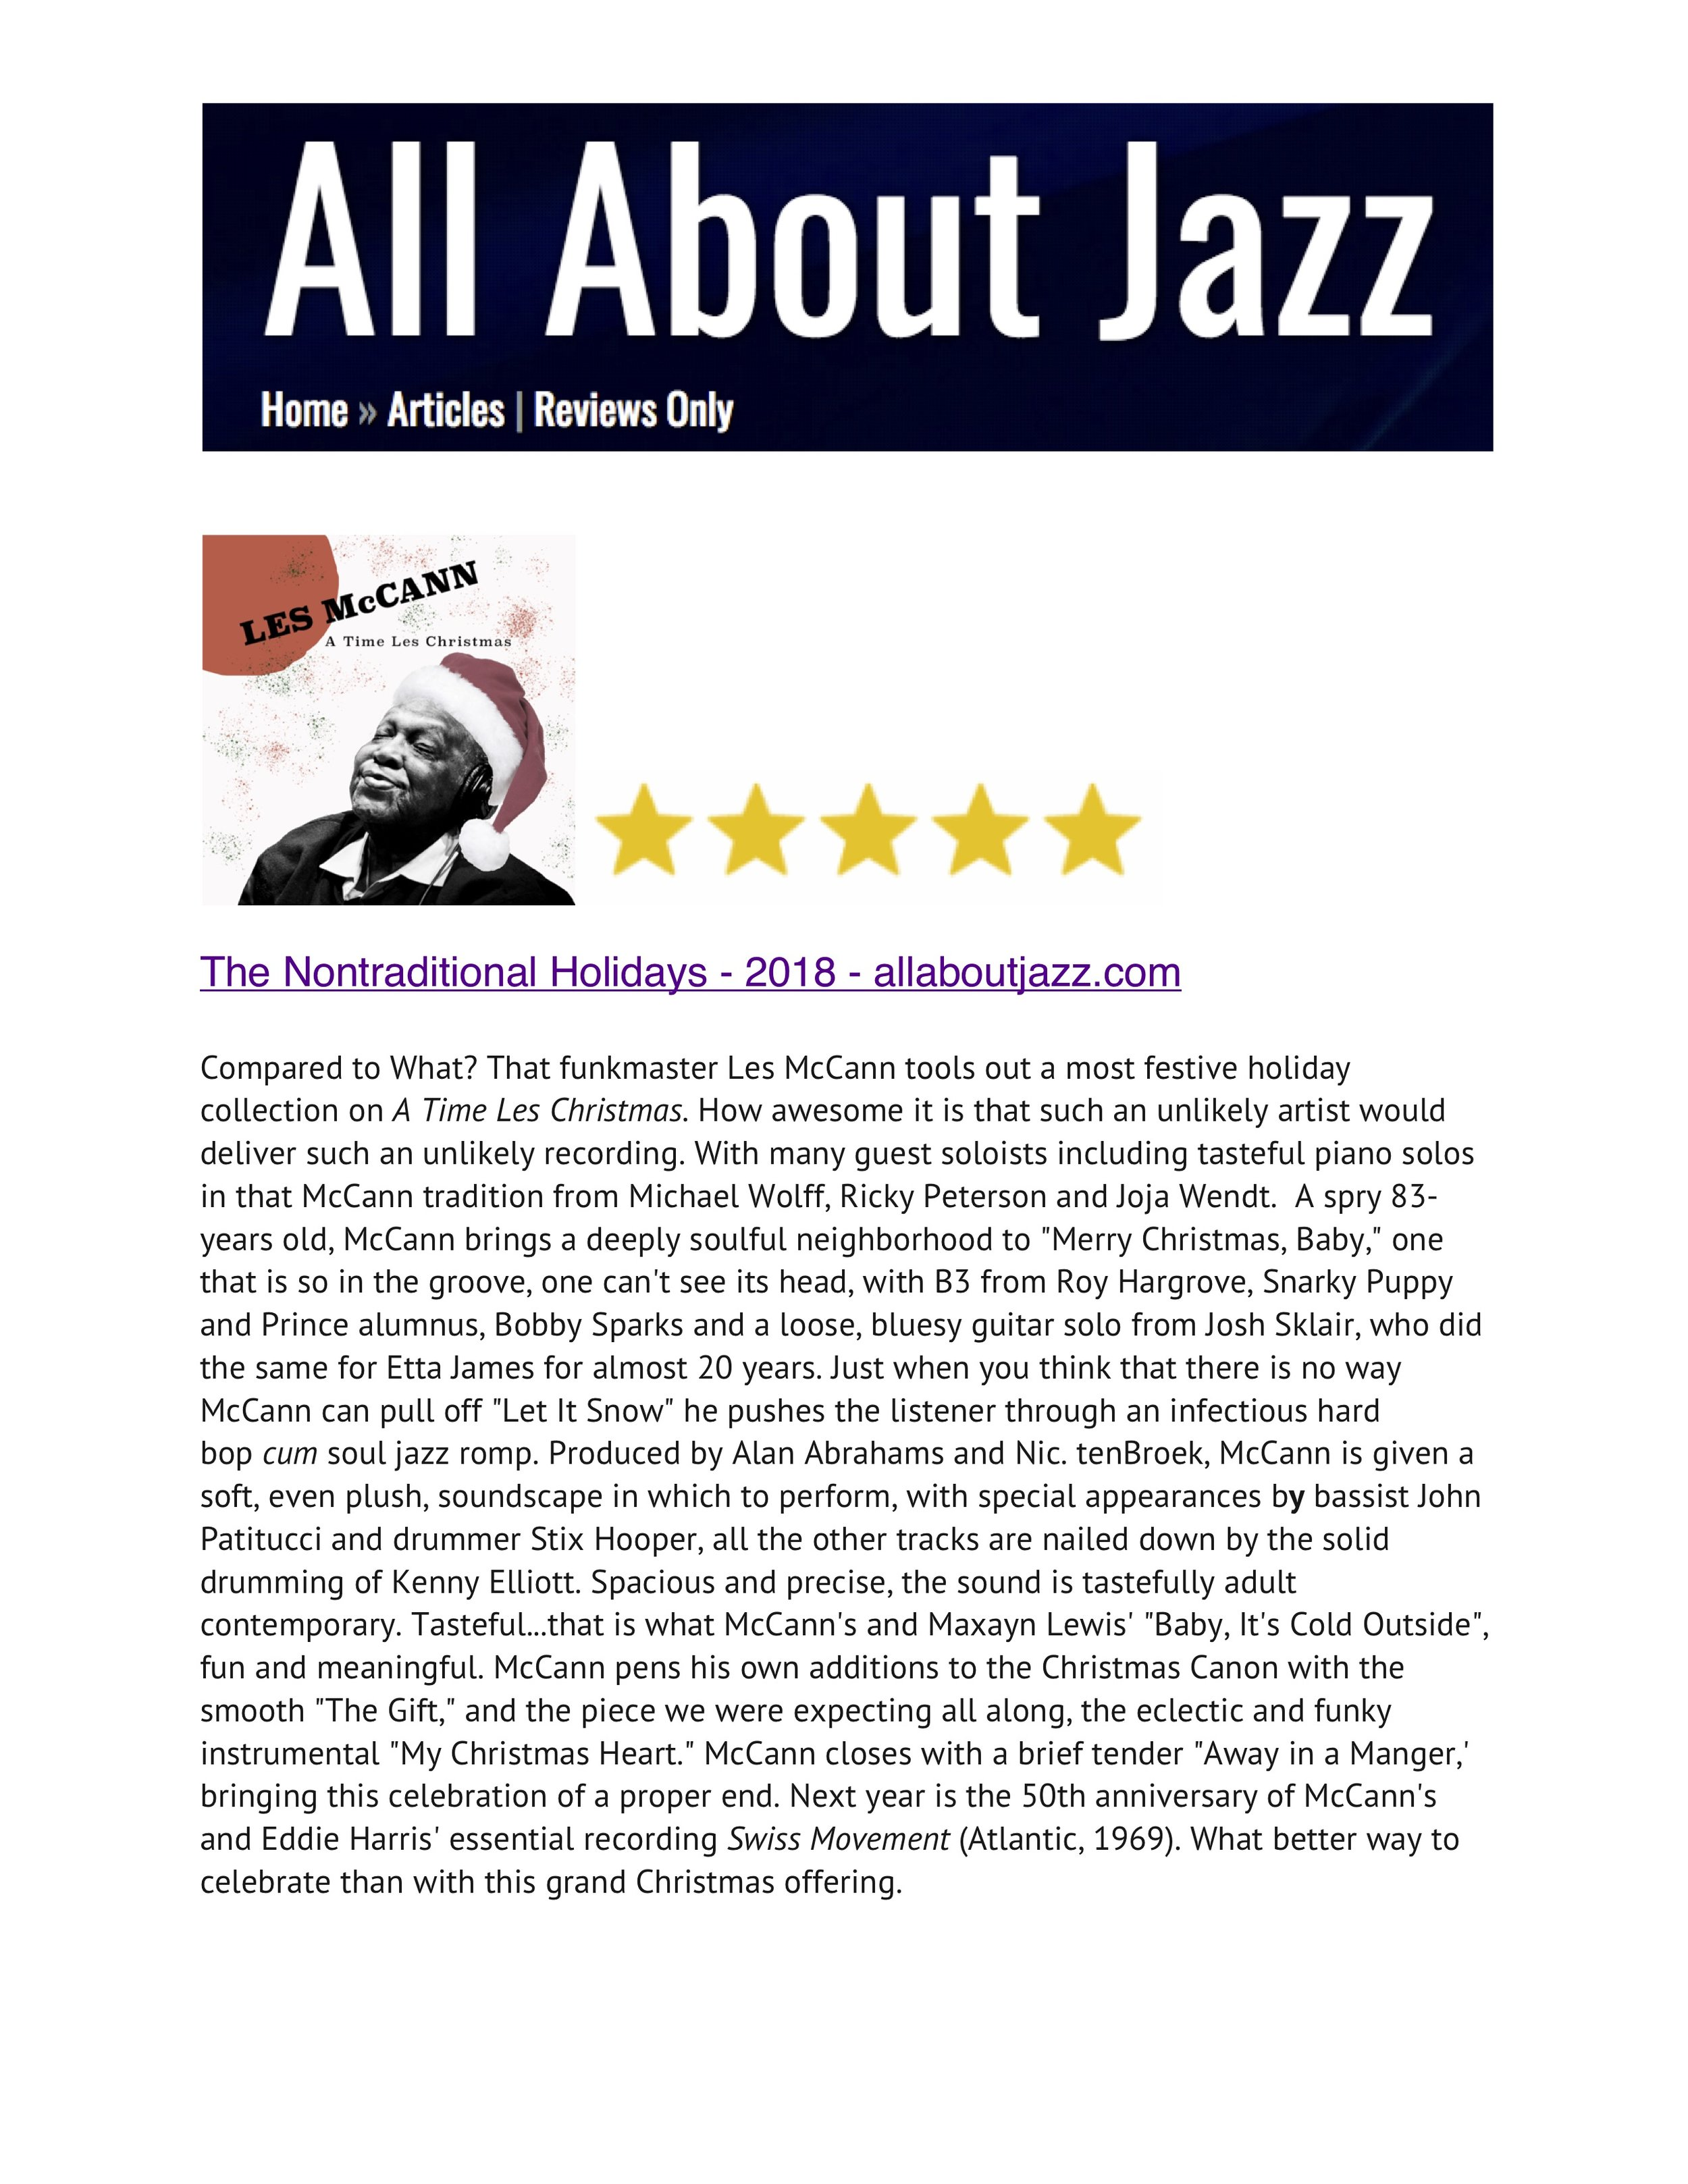 Les AllaboutJazz review v2.jpg